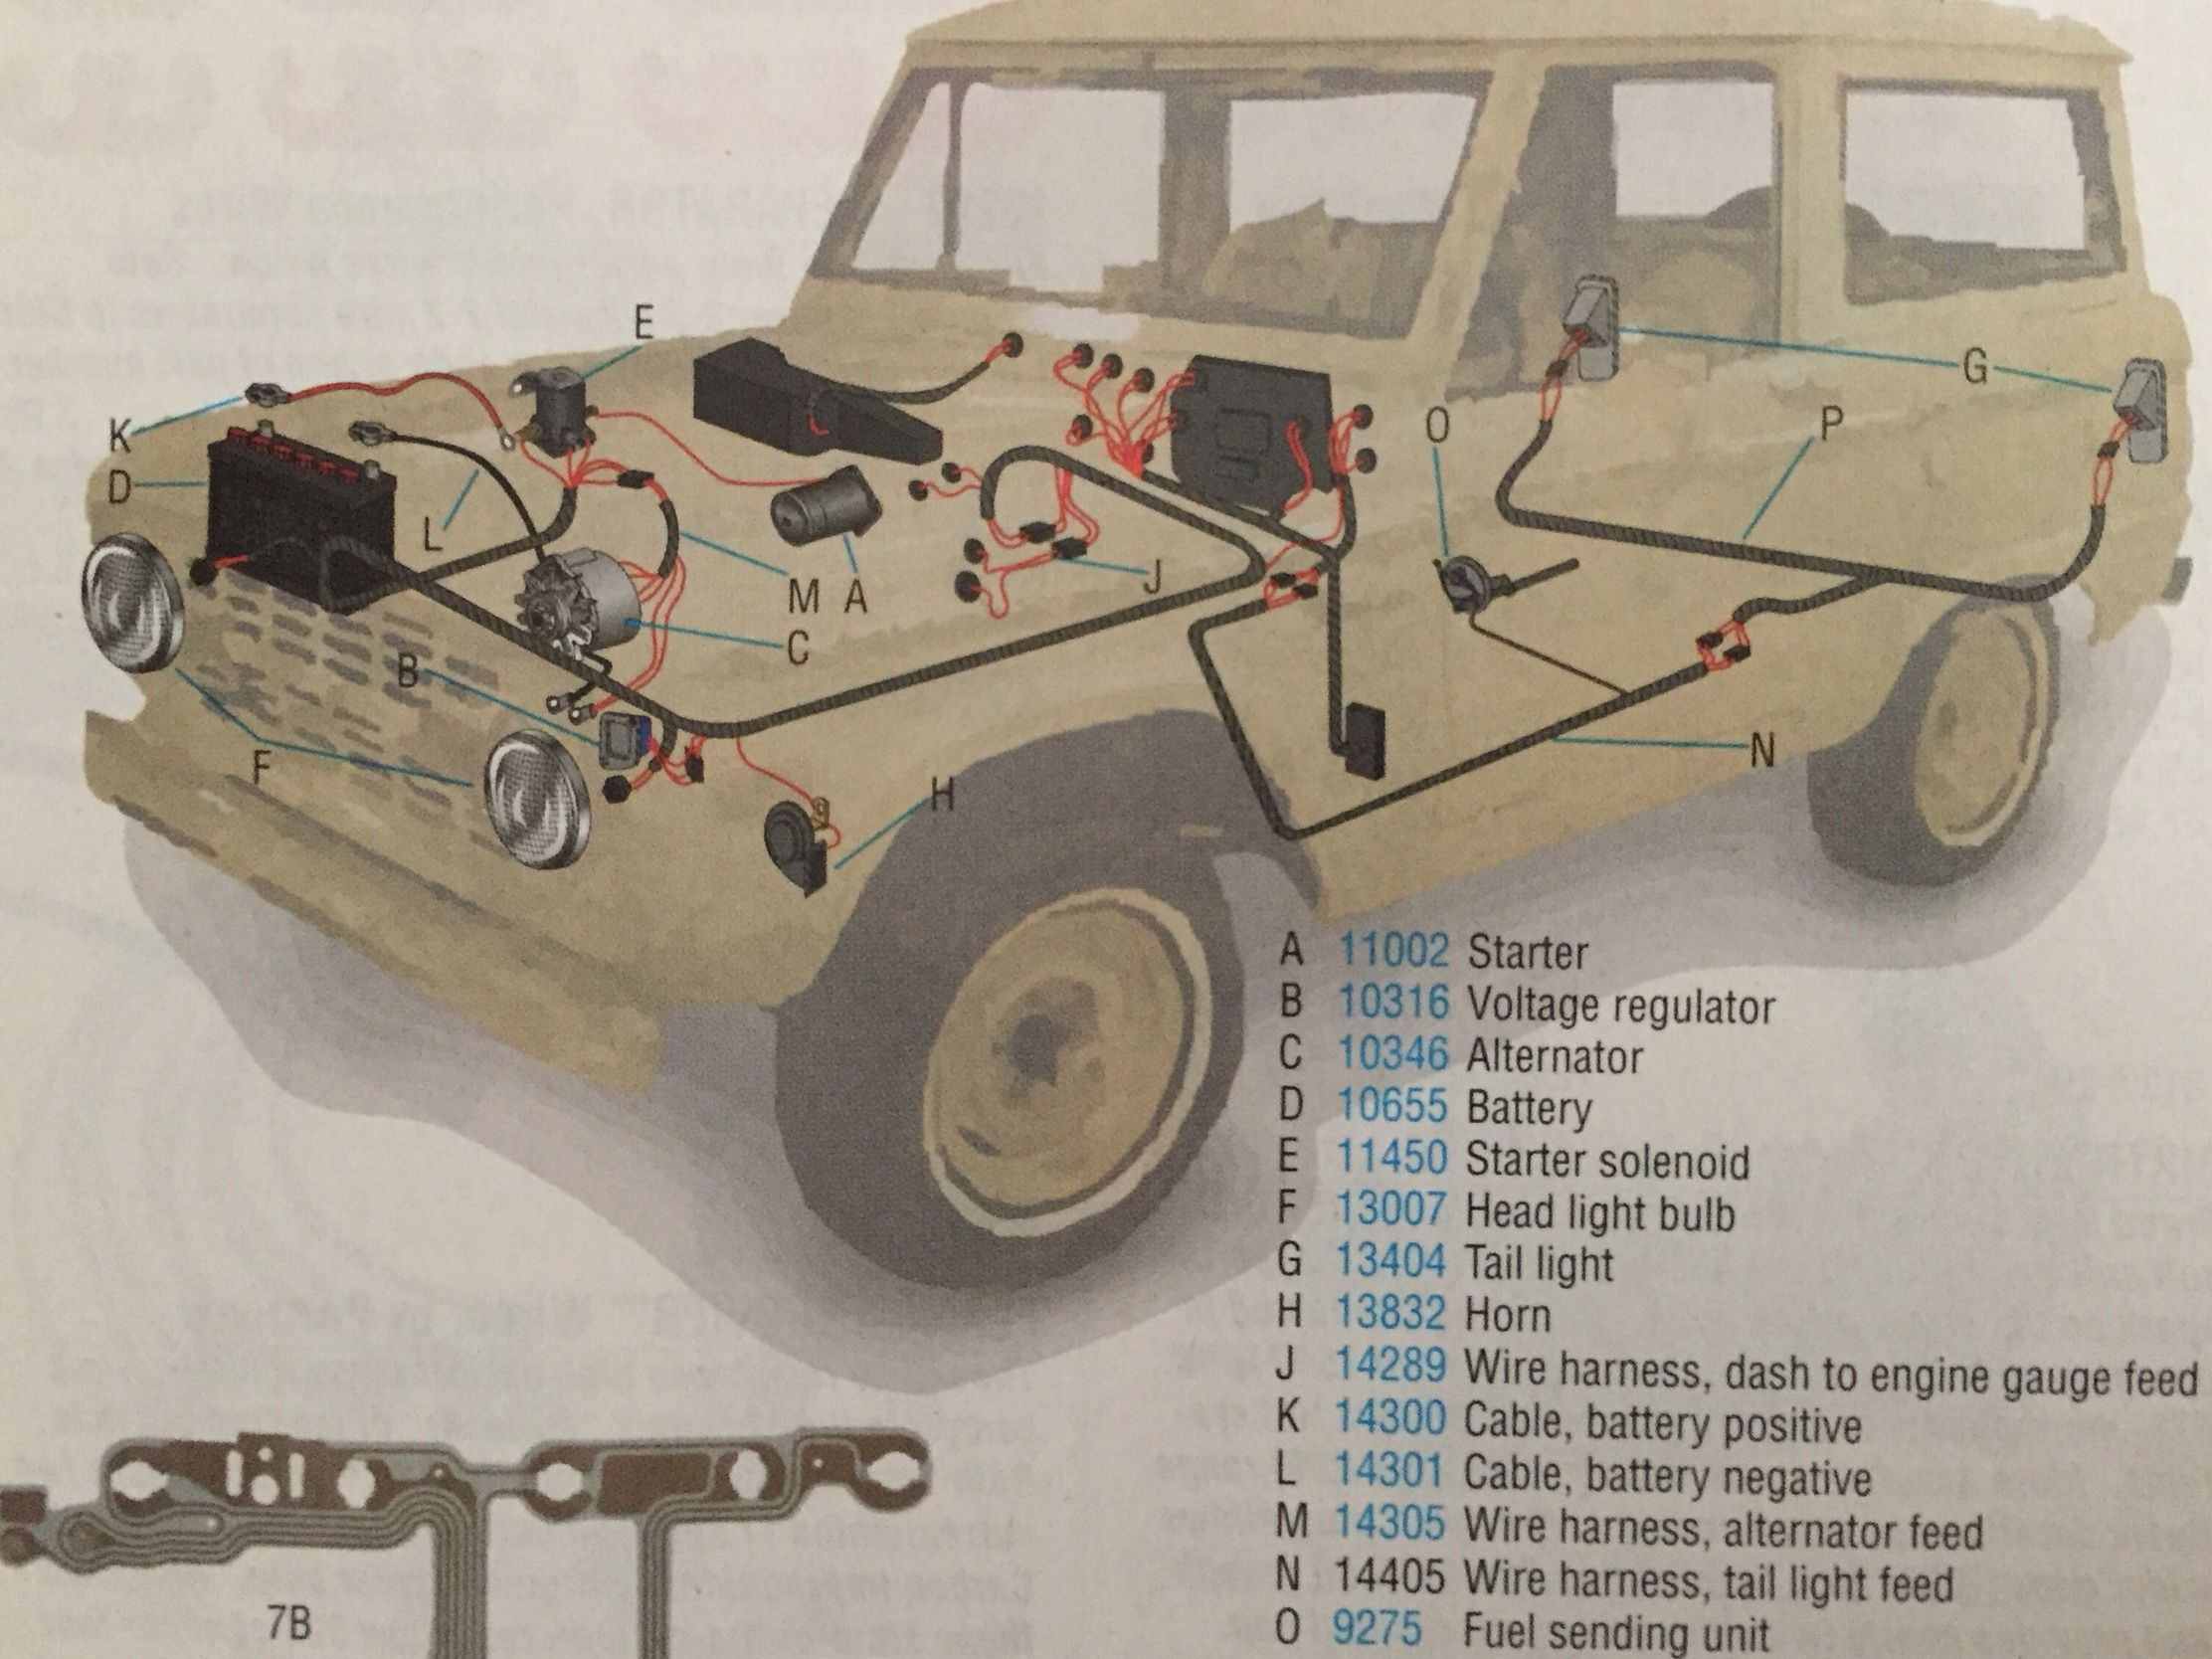 medium resolution of ford bronco electrical system chart broncos old ford bronco schematic diagram 71 eb for the 196677 early ford bronco